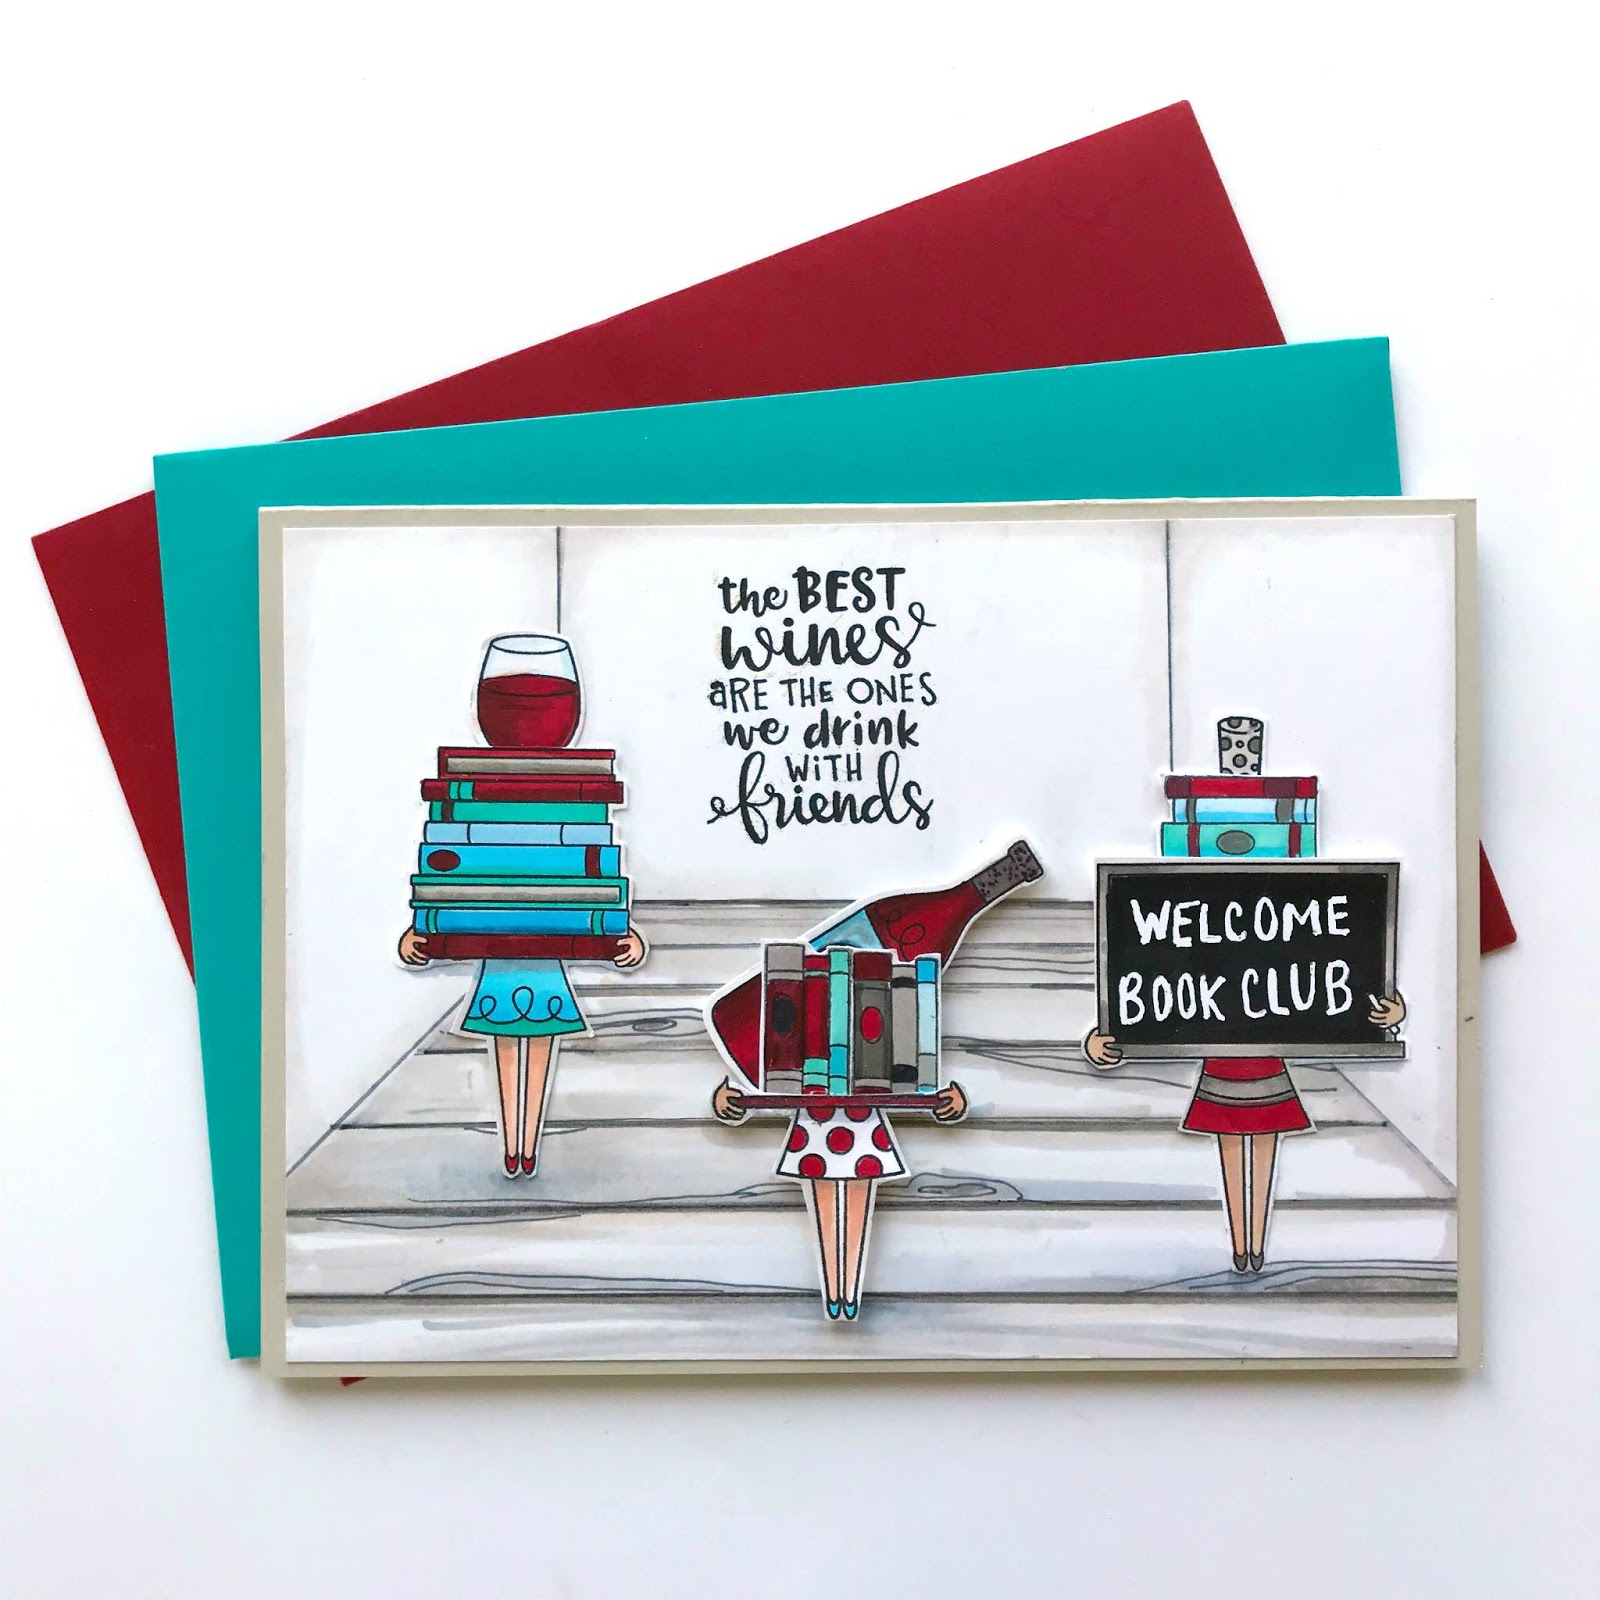 Book Club Wine Card by October Guest Designer Bobbi Lemanski | Wine A Little and Classy Teachers Stamp Sets by Newton's Nook Designs #newtonsnook #handmade